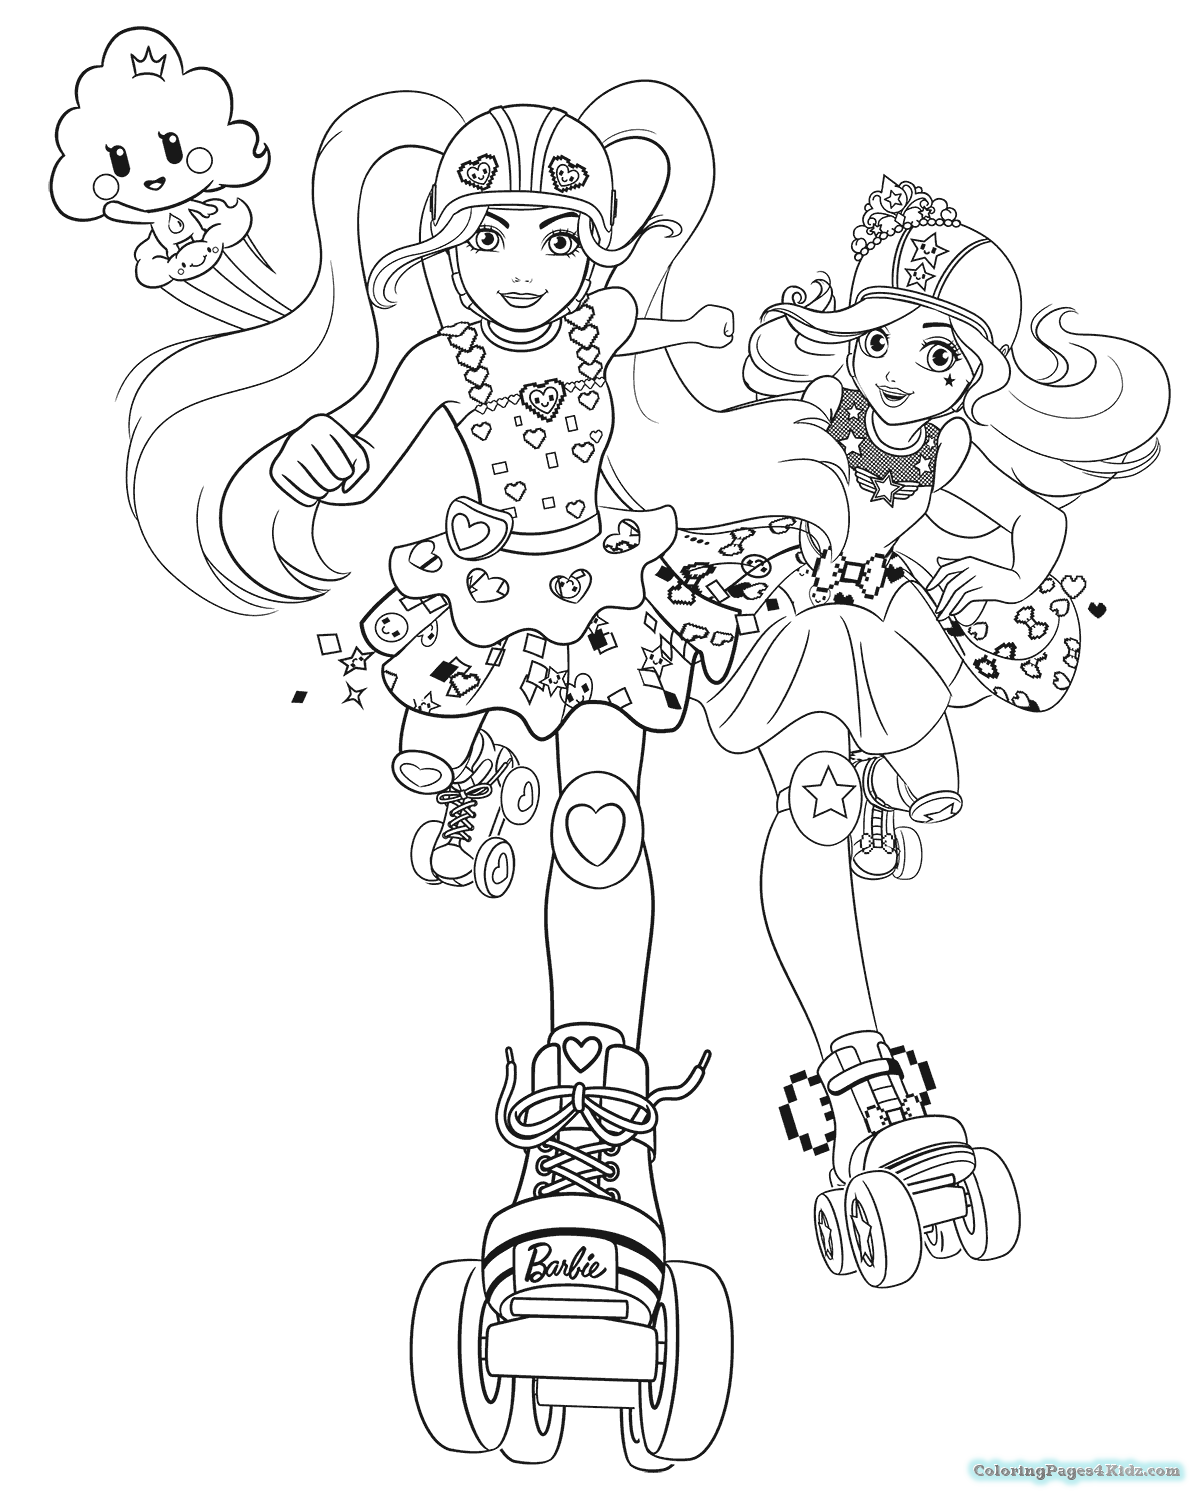 Video Game Coloring Pages Png - Barbie Video Game Hero Coloring Pages